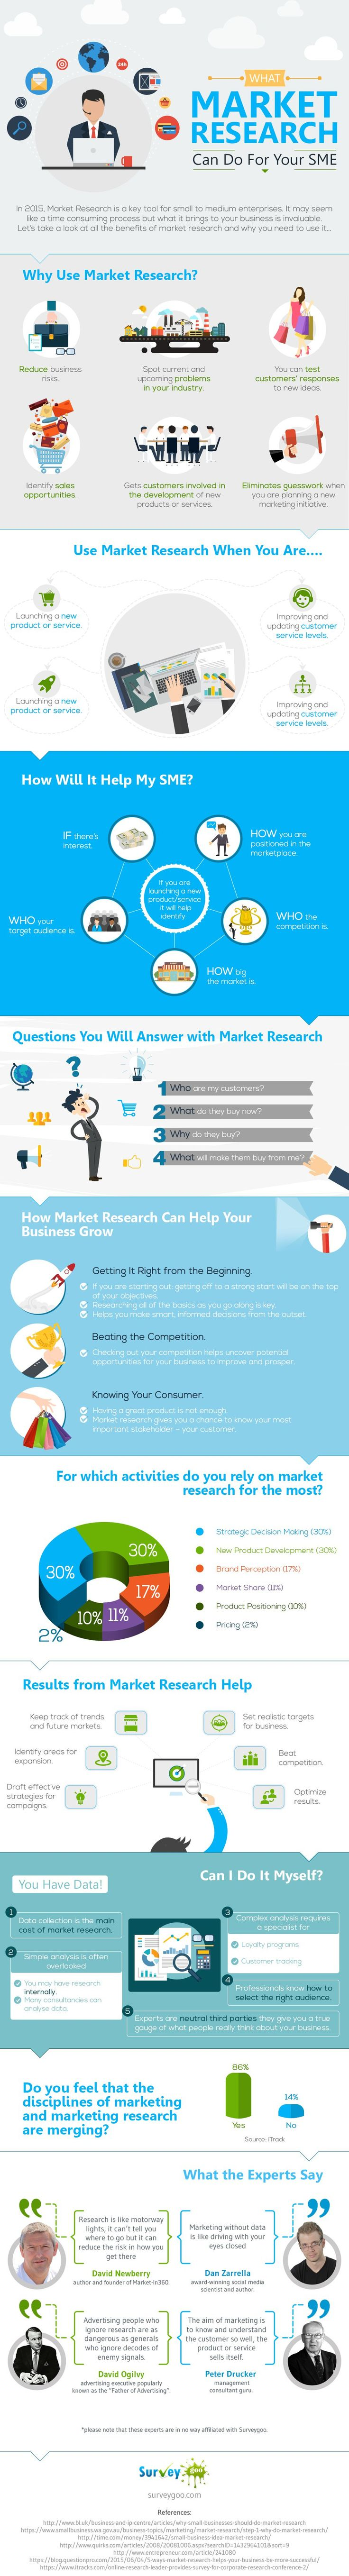 best ideas about business technology internet of conducting market research is a must for businesses of all sizes for any business market research is vital for survival and growth not only does it allow